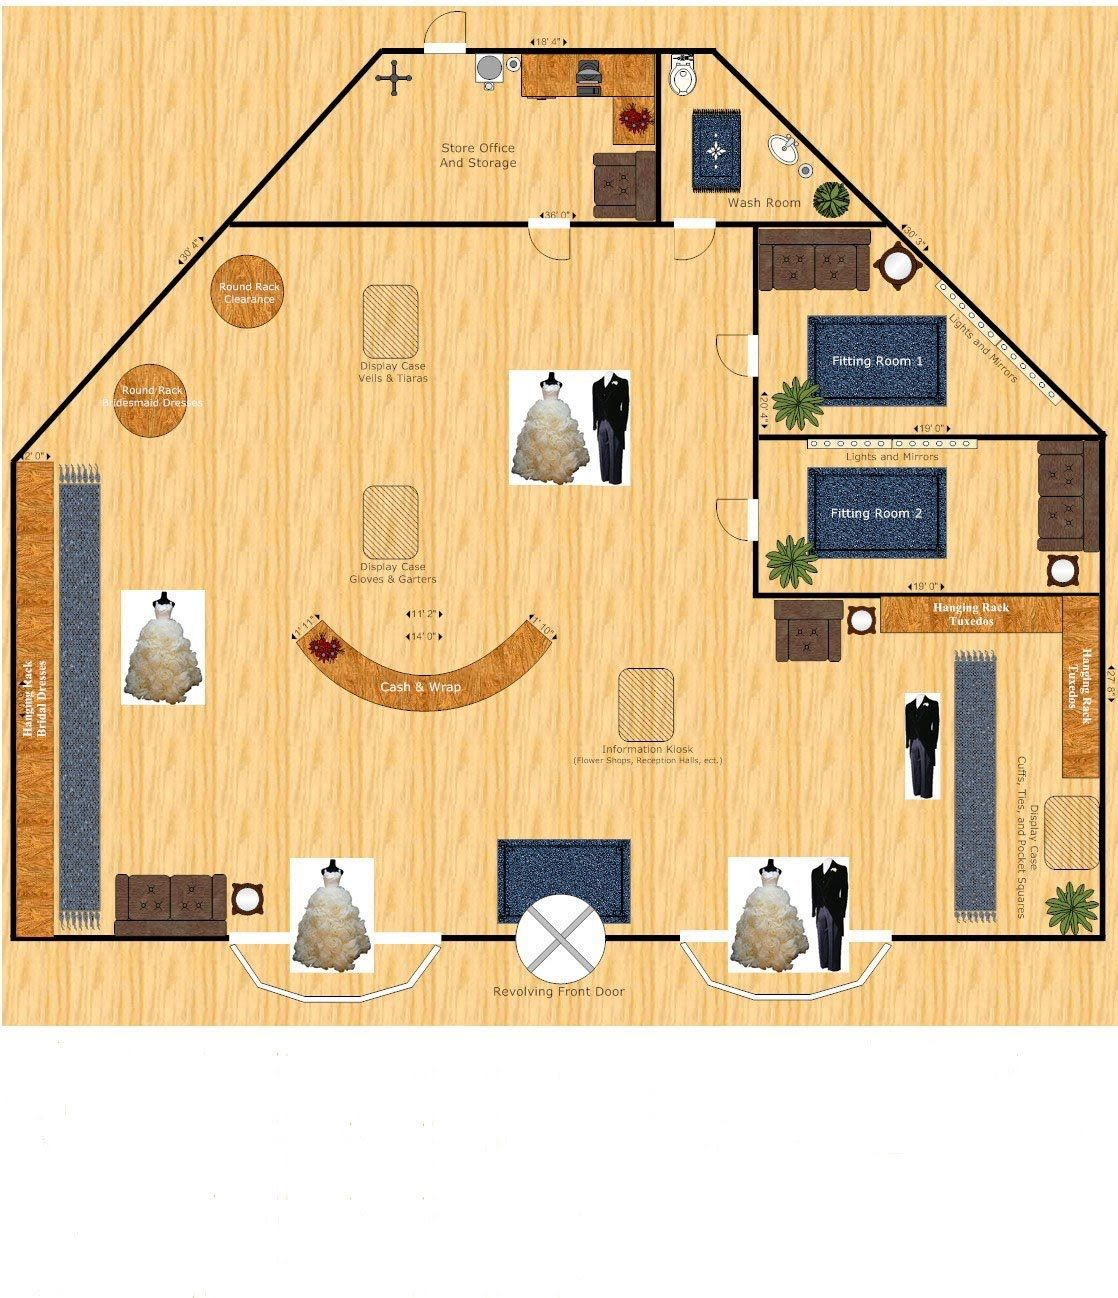 Bridal Boutique Floor Plan Interior Design